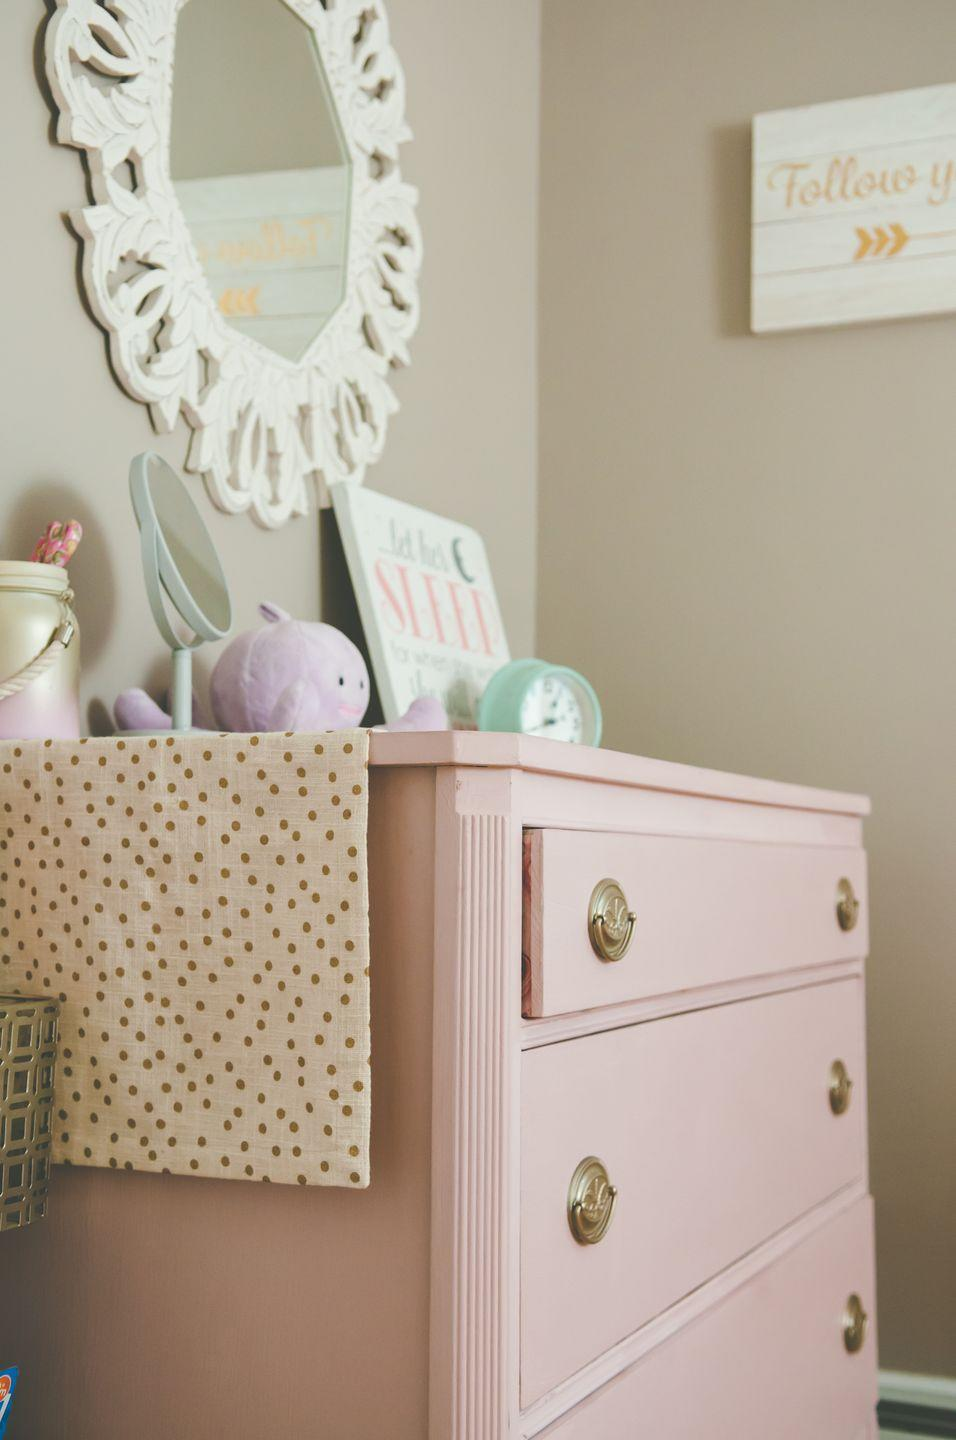 """<p>When it comes to furnishing a space for your youngster, it's always best to err on the side of caution, which is why you should always buy new items that are designed to be safe enough for kids' bedrooms and nurseries. If you purchase a thrifted piece, you can never be sure that it was created with little ones in mind. </p><p><strong>RELATED: </strong><a href=""""https://www.countryliving.com/shopping/antiques/news/g5036/joanna-gaines-antique-tips/"""" rel=""""nofollow noopener"""" target=""""_blank"""" data-ylk=""""slk:Antiques Joanna Gaines Always Hunts for at Flea Markets"""" class=""""link rapid-noclick-resp"""">Antiques Joanna Gaines Always Hunts for at Flea Markets</a></p>"""